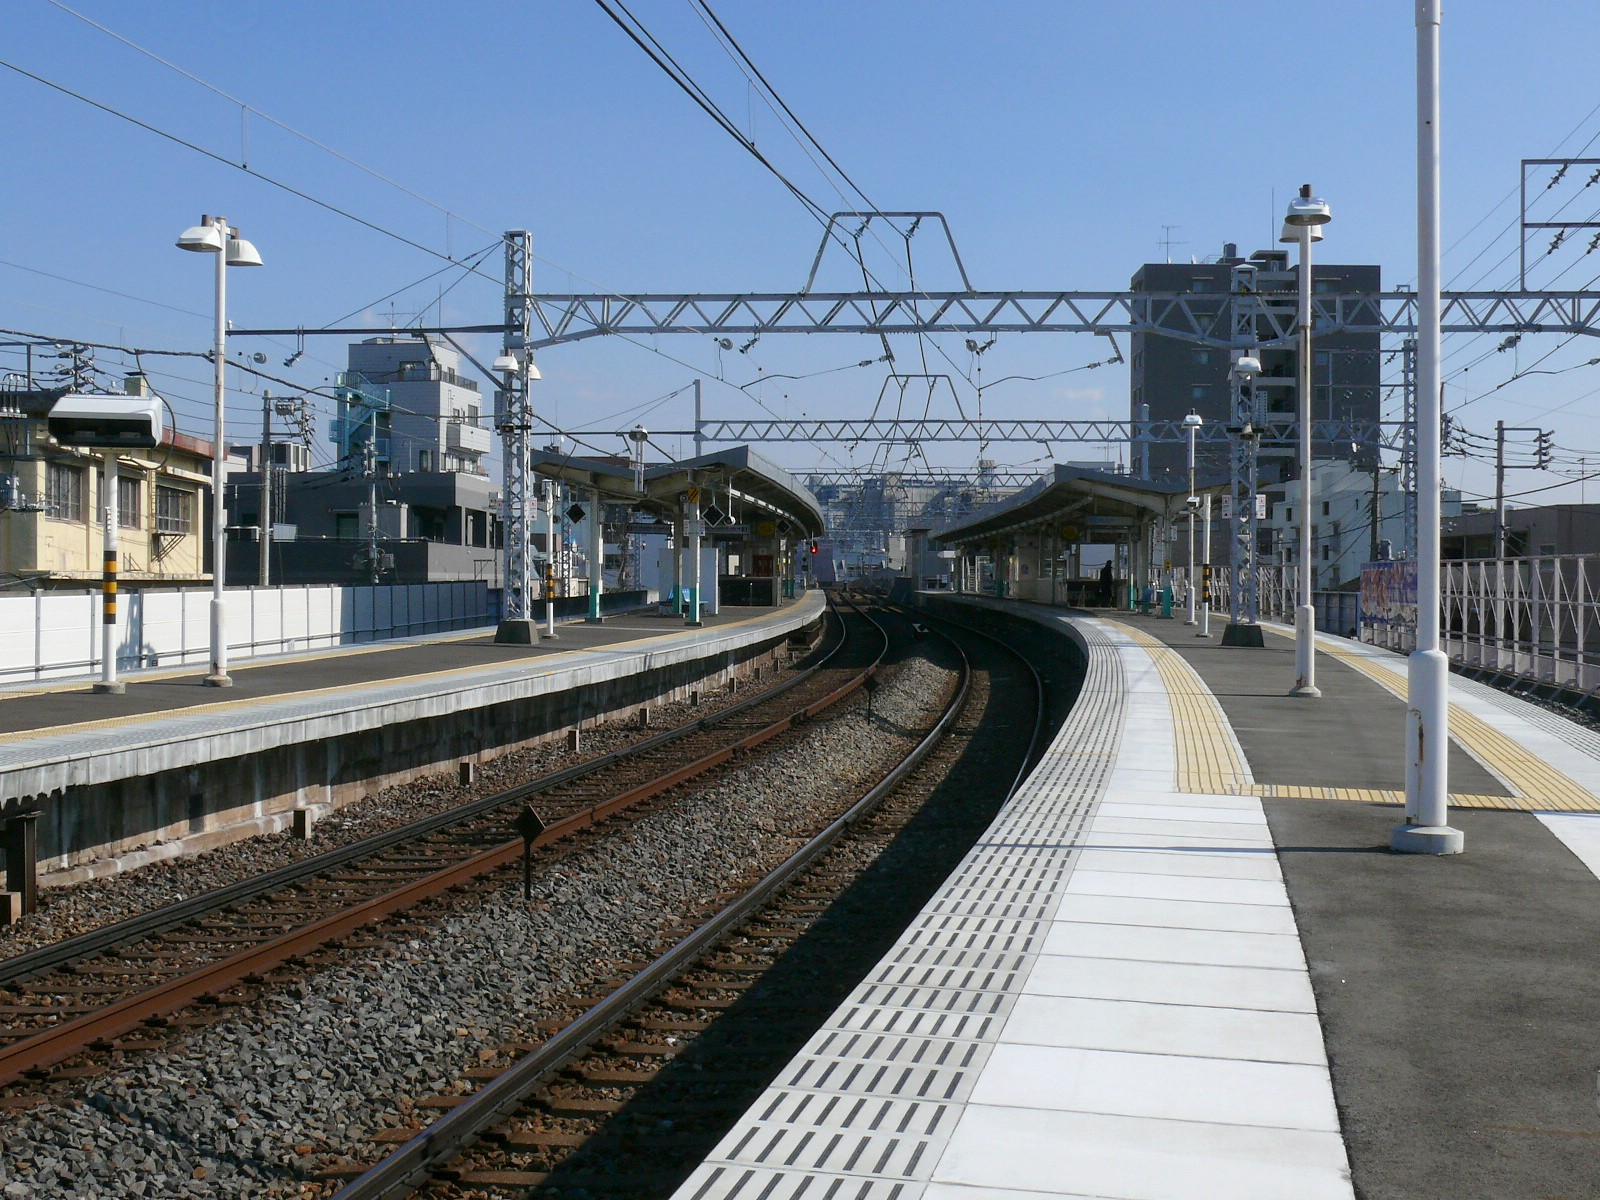 https://upload.wikimedia.org/wikipedia/commons/5/5e/Senju%C5%8Dhashi_Station-Premises.JPG